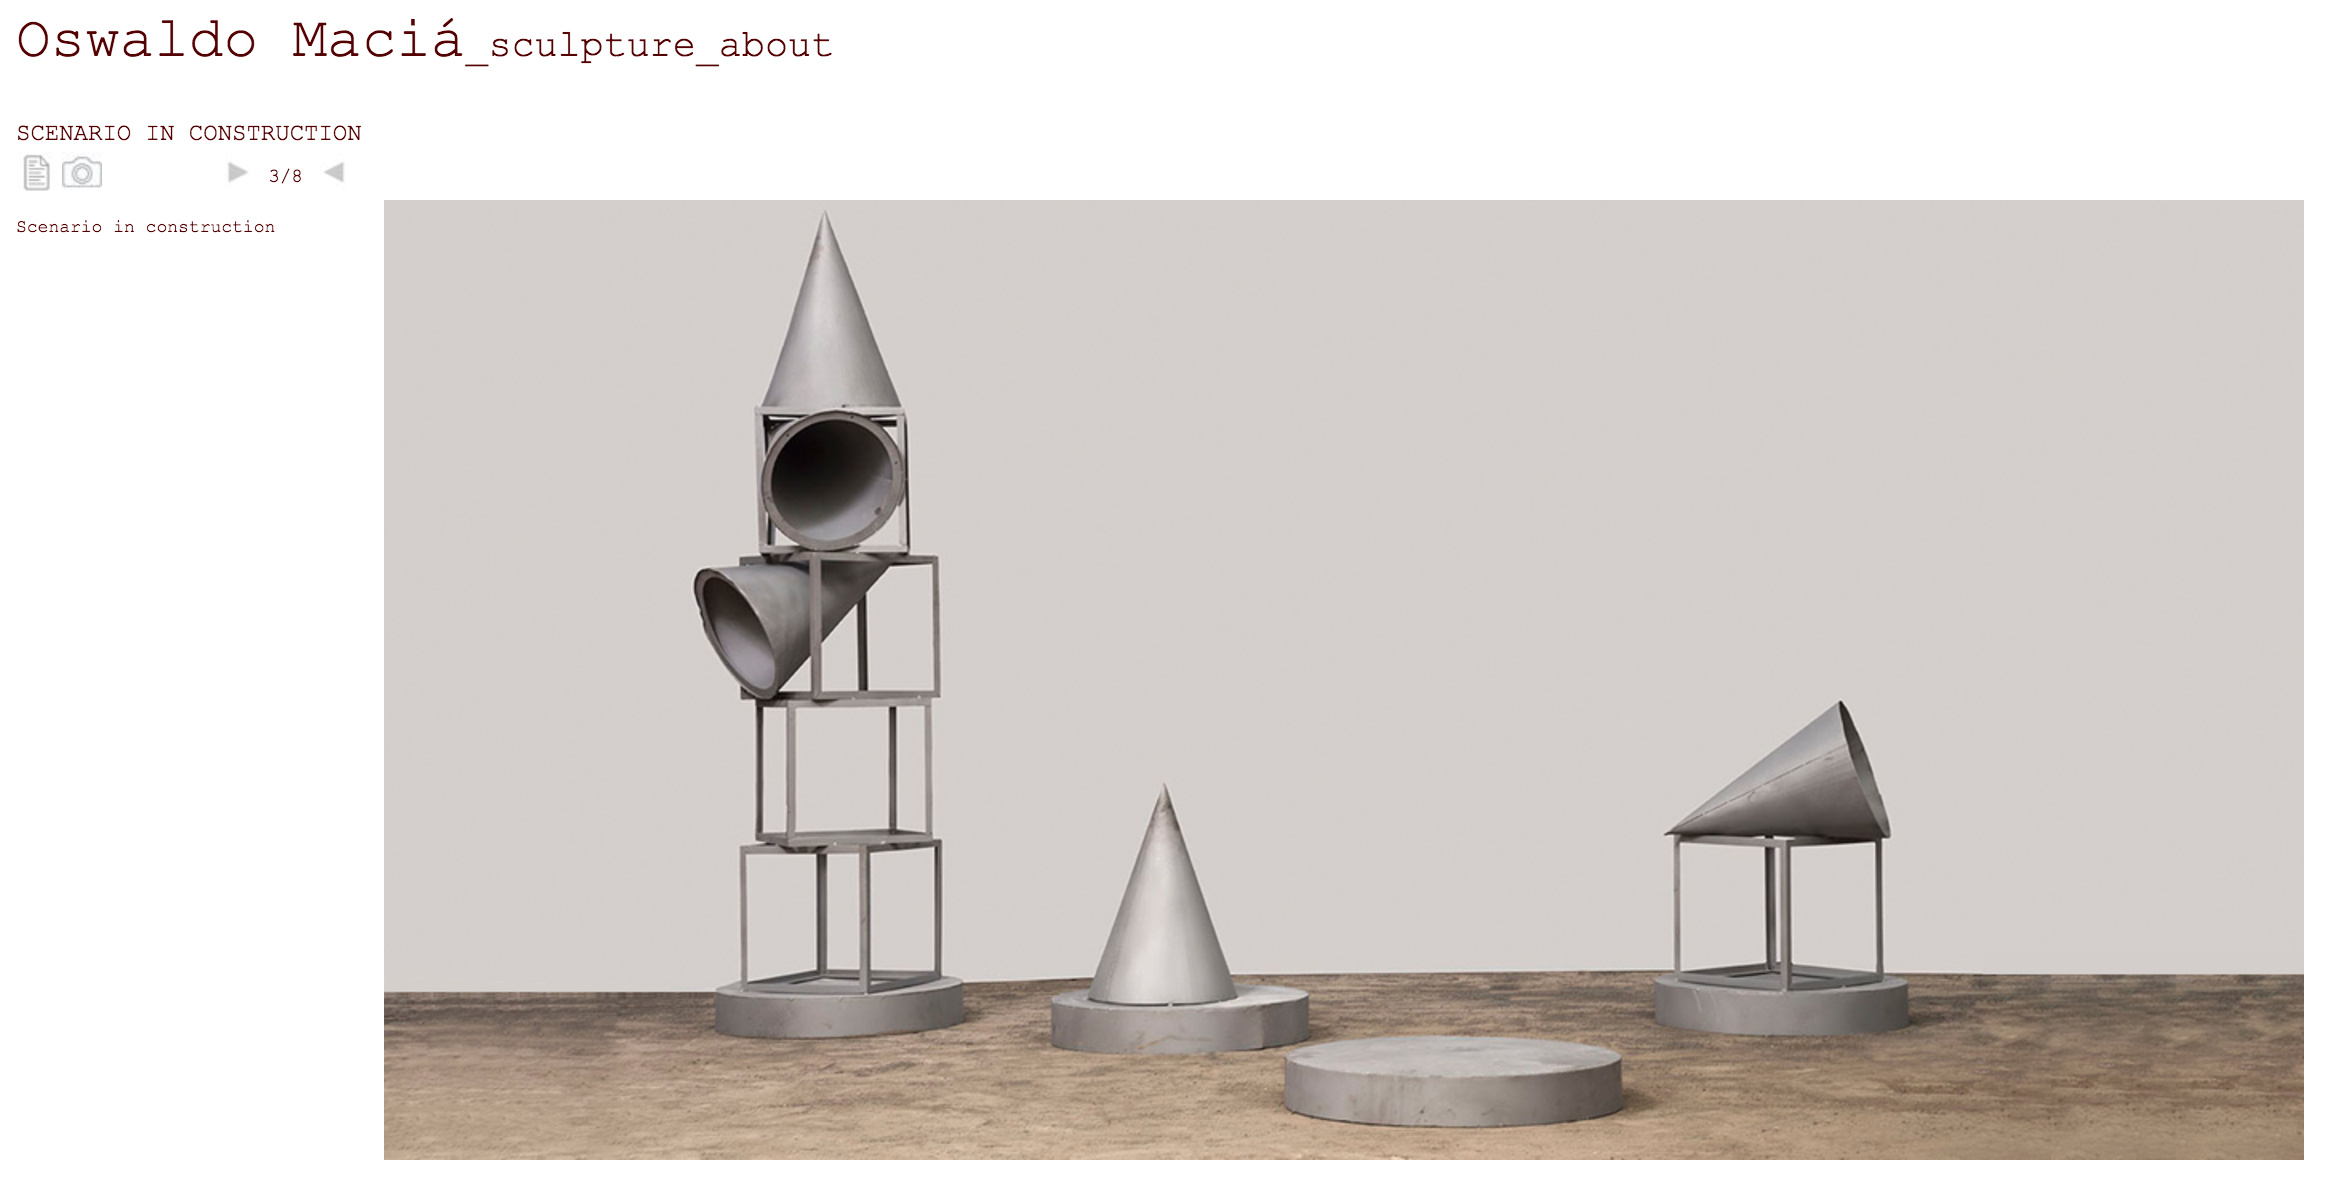 Figure 6: Scenario in Construction.  Proofs of Oswaldo Maciá's monument. (Snapshot from the artist's  website )